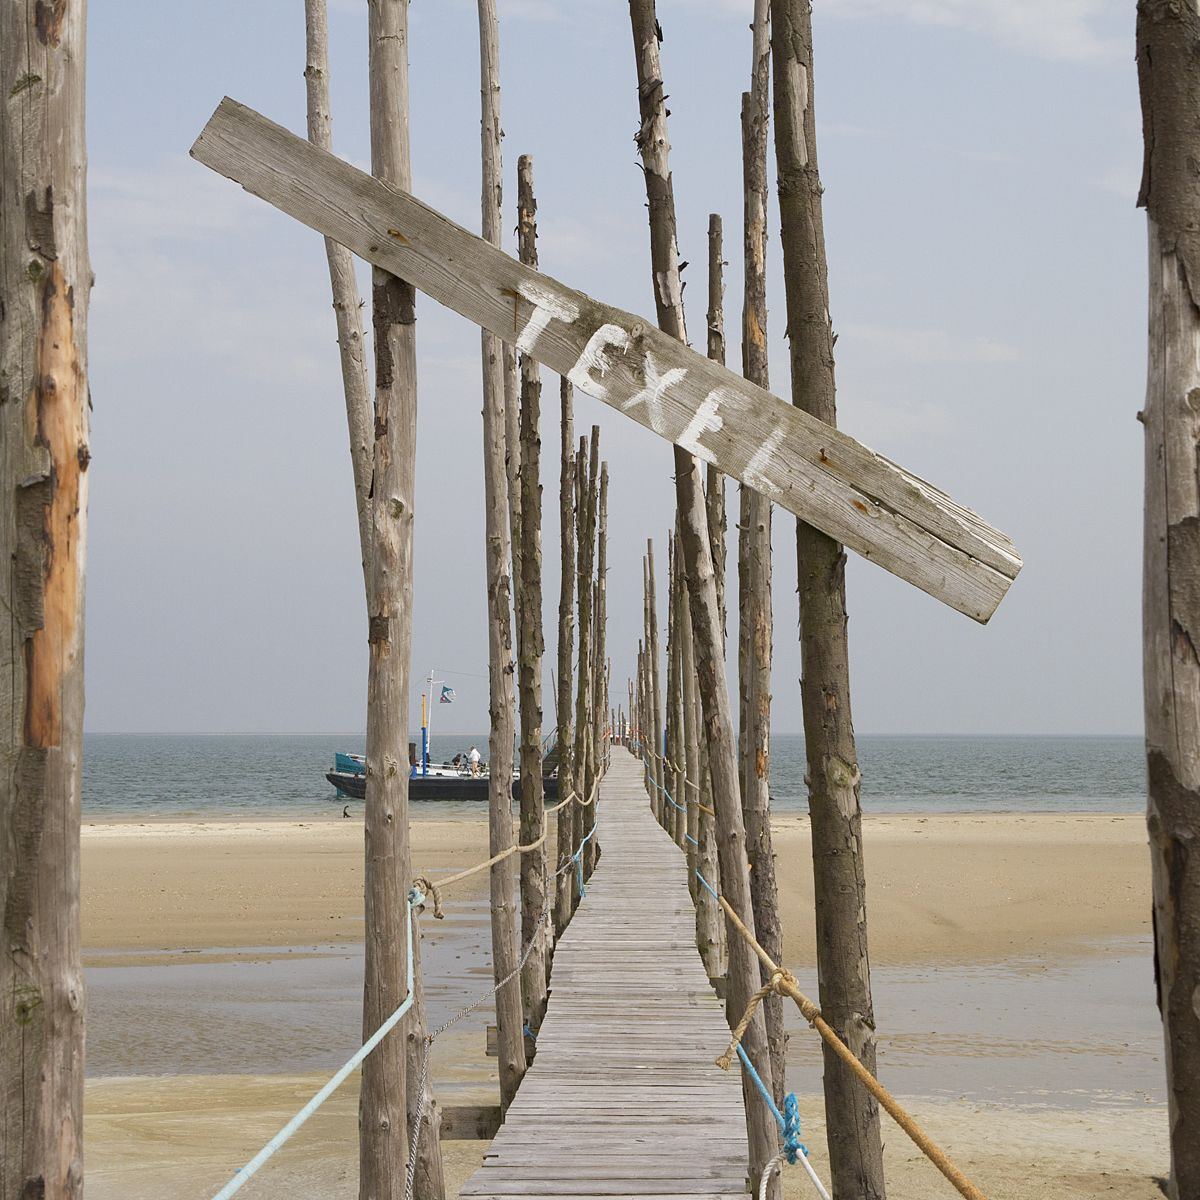 The jetty on Vlieland